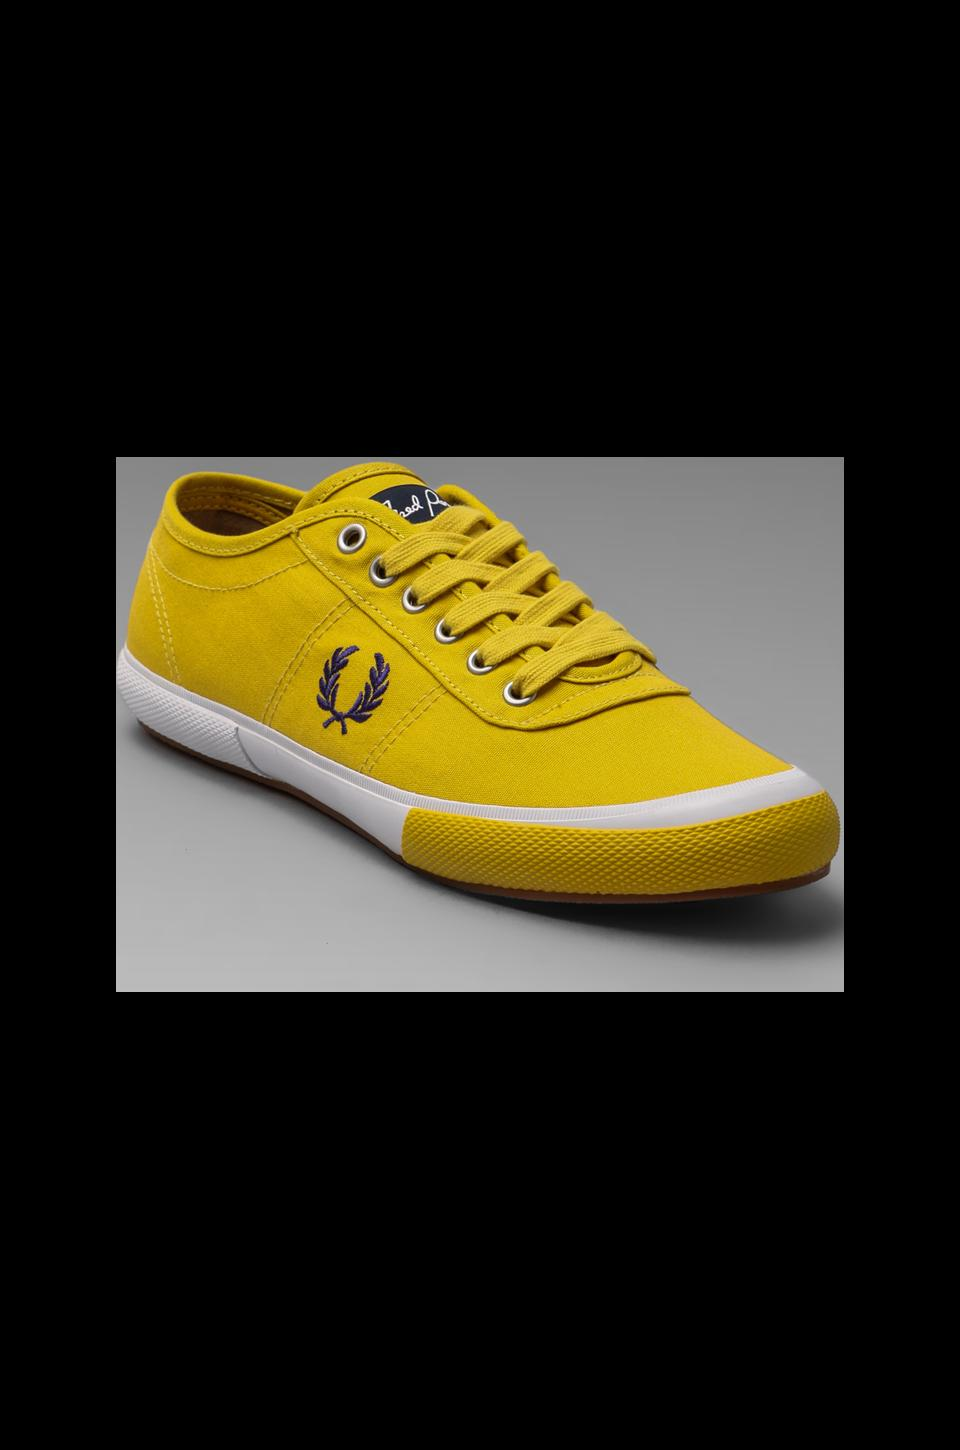 Fred Perry Woodford Canvas in Amarillo/Passion Plum